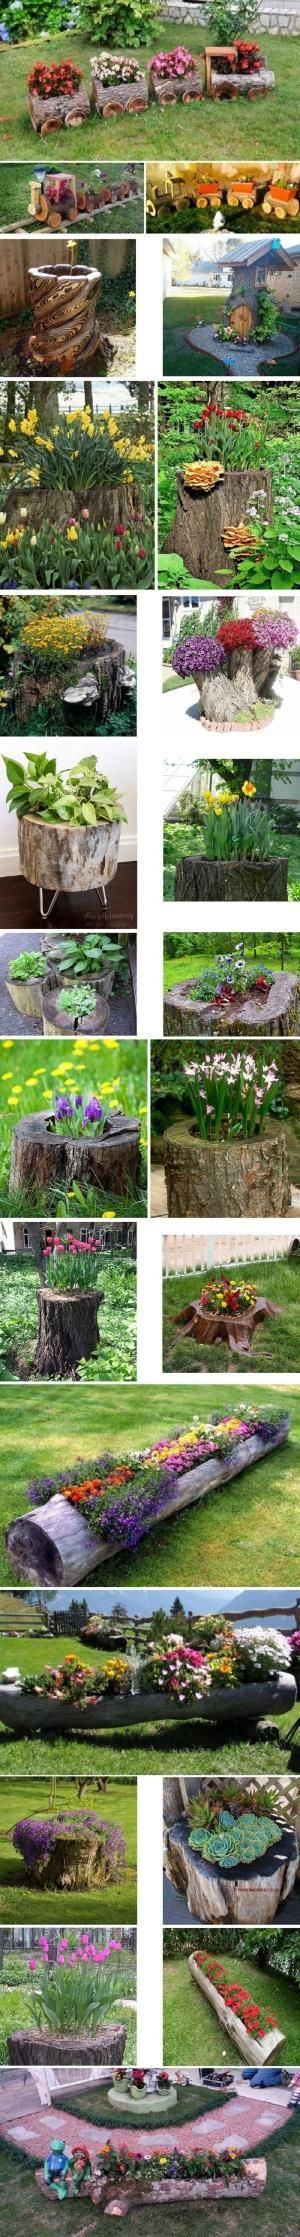 Old light fixtures turned into planters